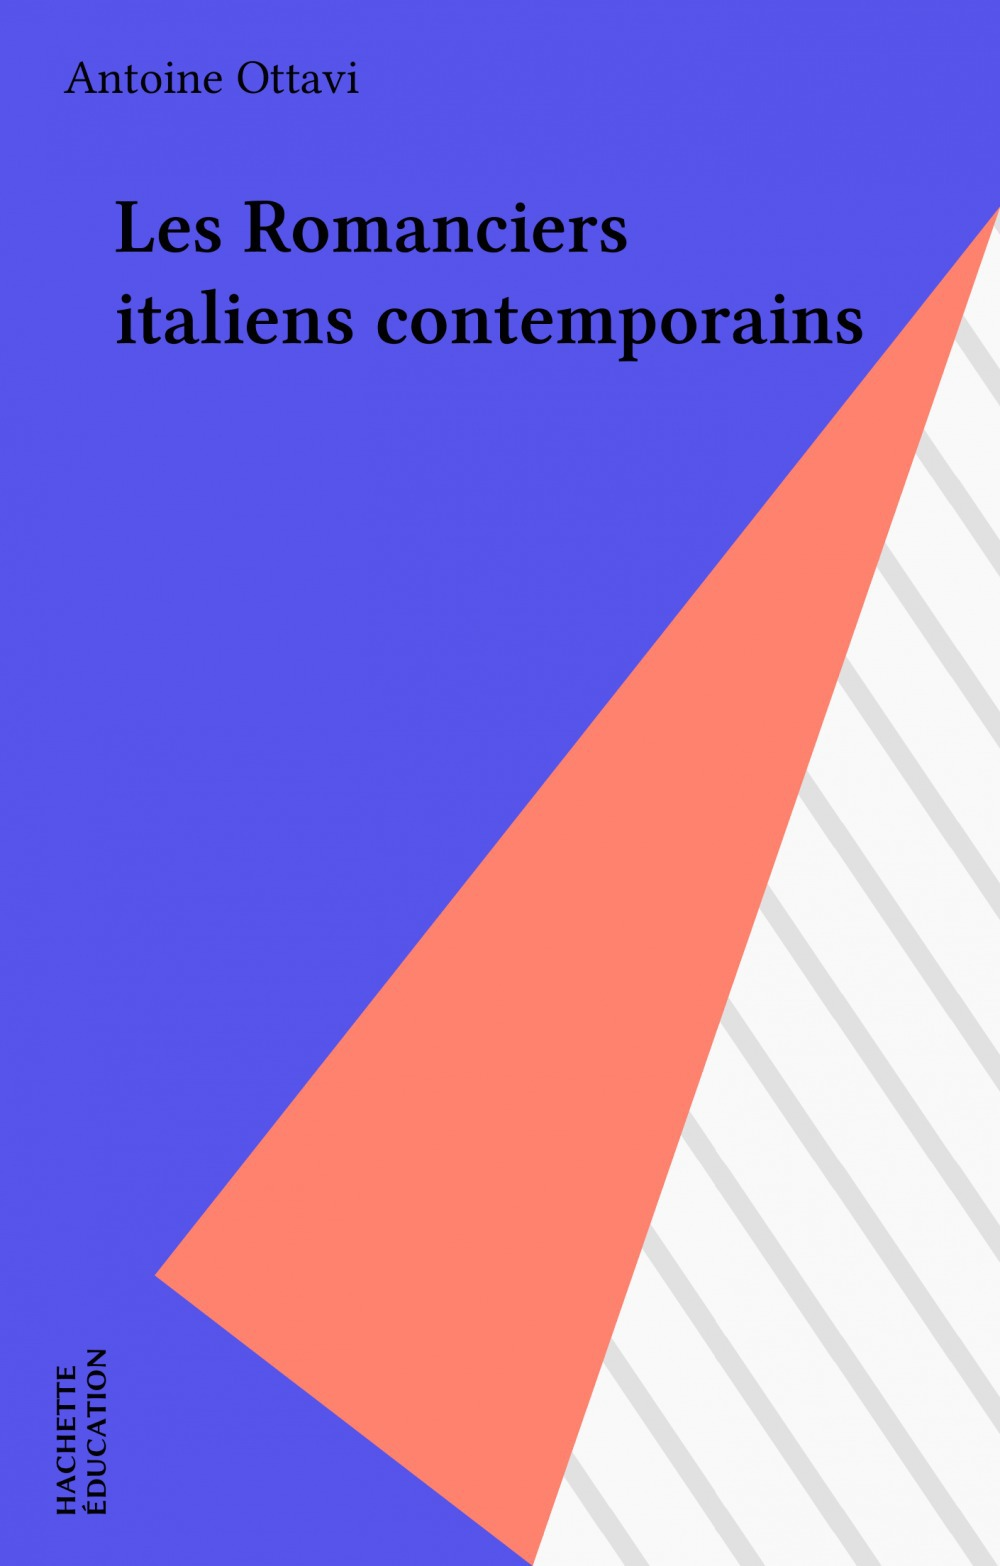 Romanciers italiens contemporains